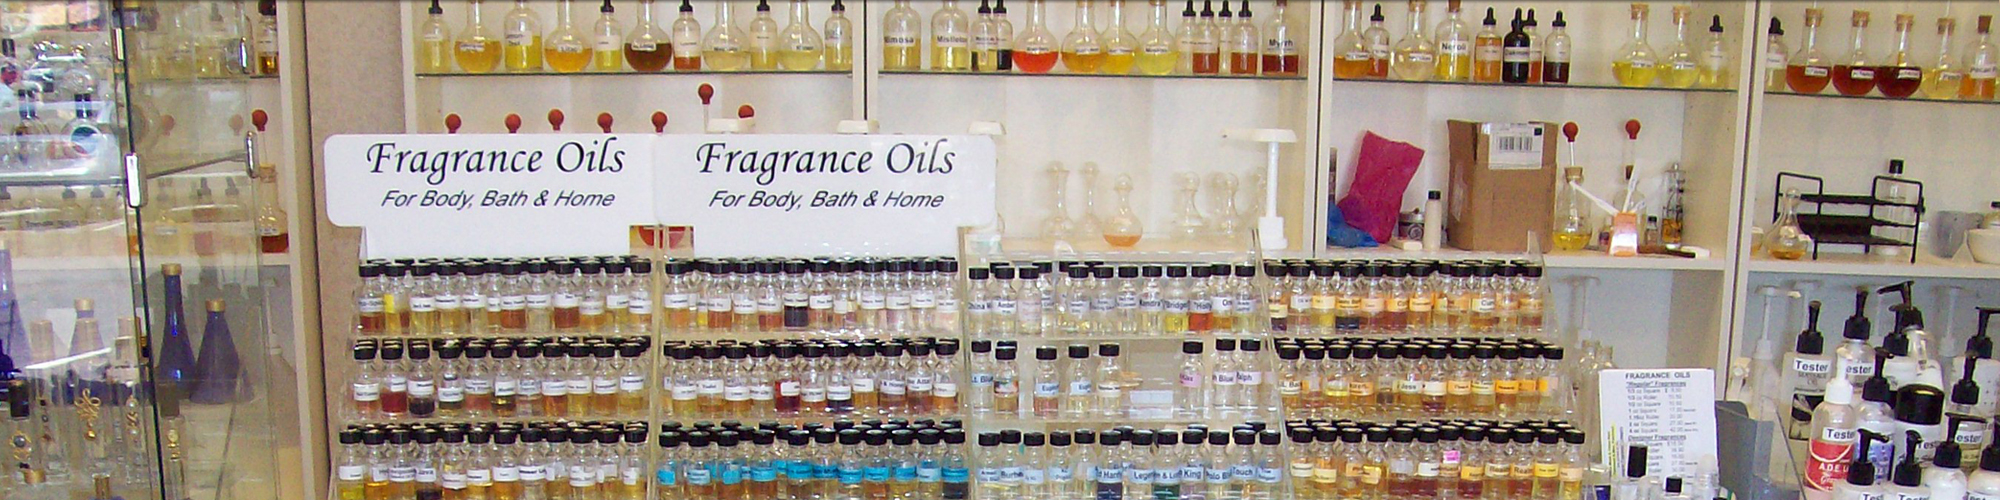 Display of Fragrance Oils